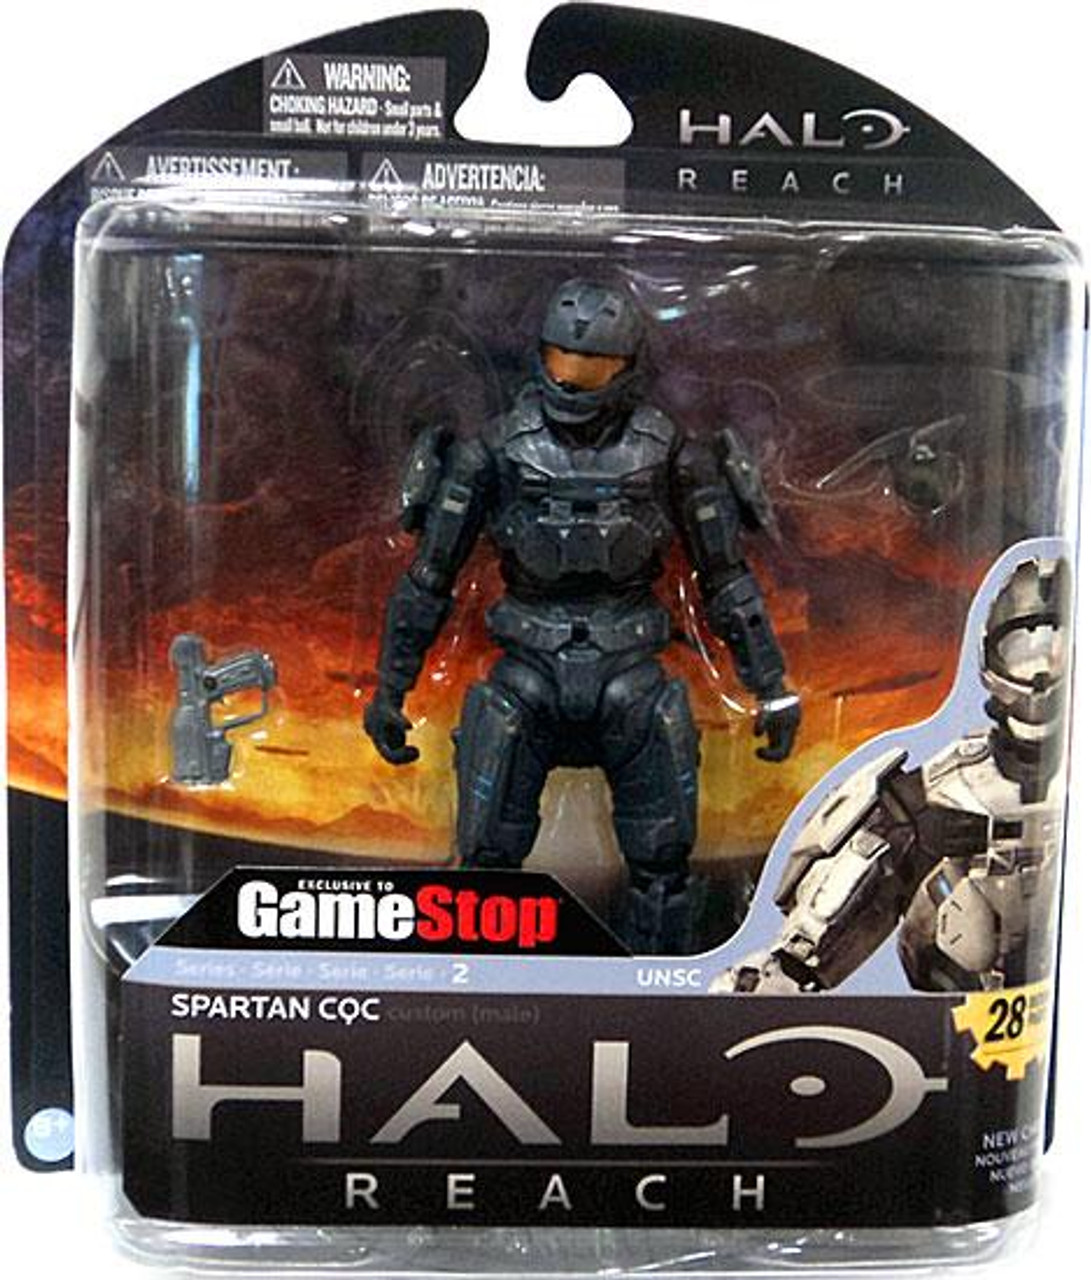 McFarlane Toys Halo Reach Series 2 Spartan CQC Exclusive Action Figure [Steel]